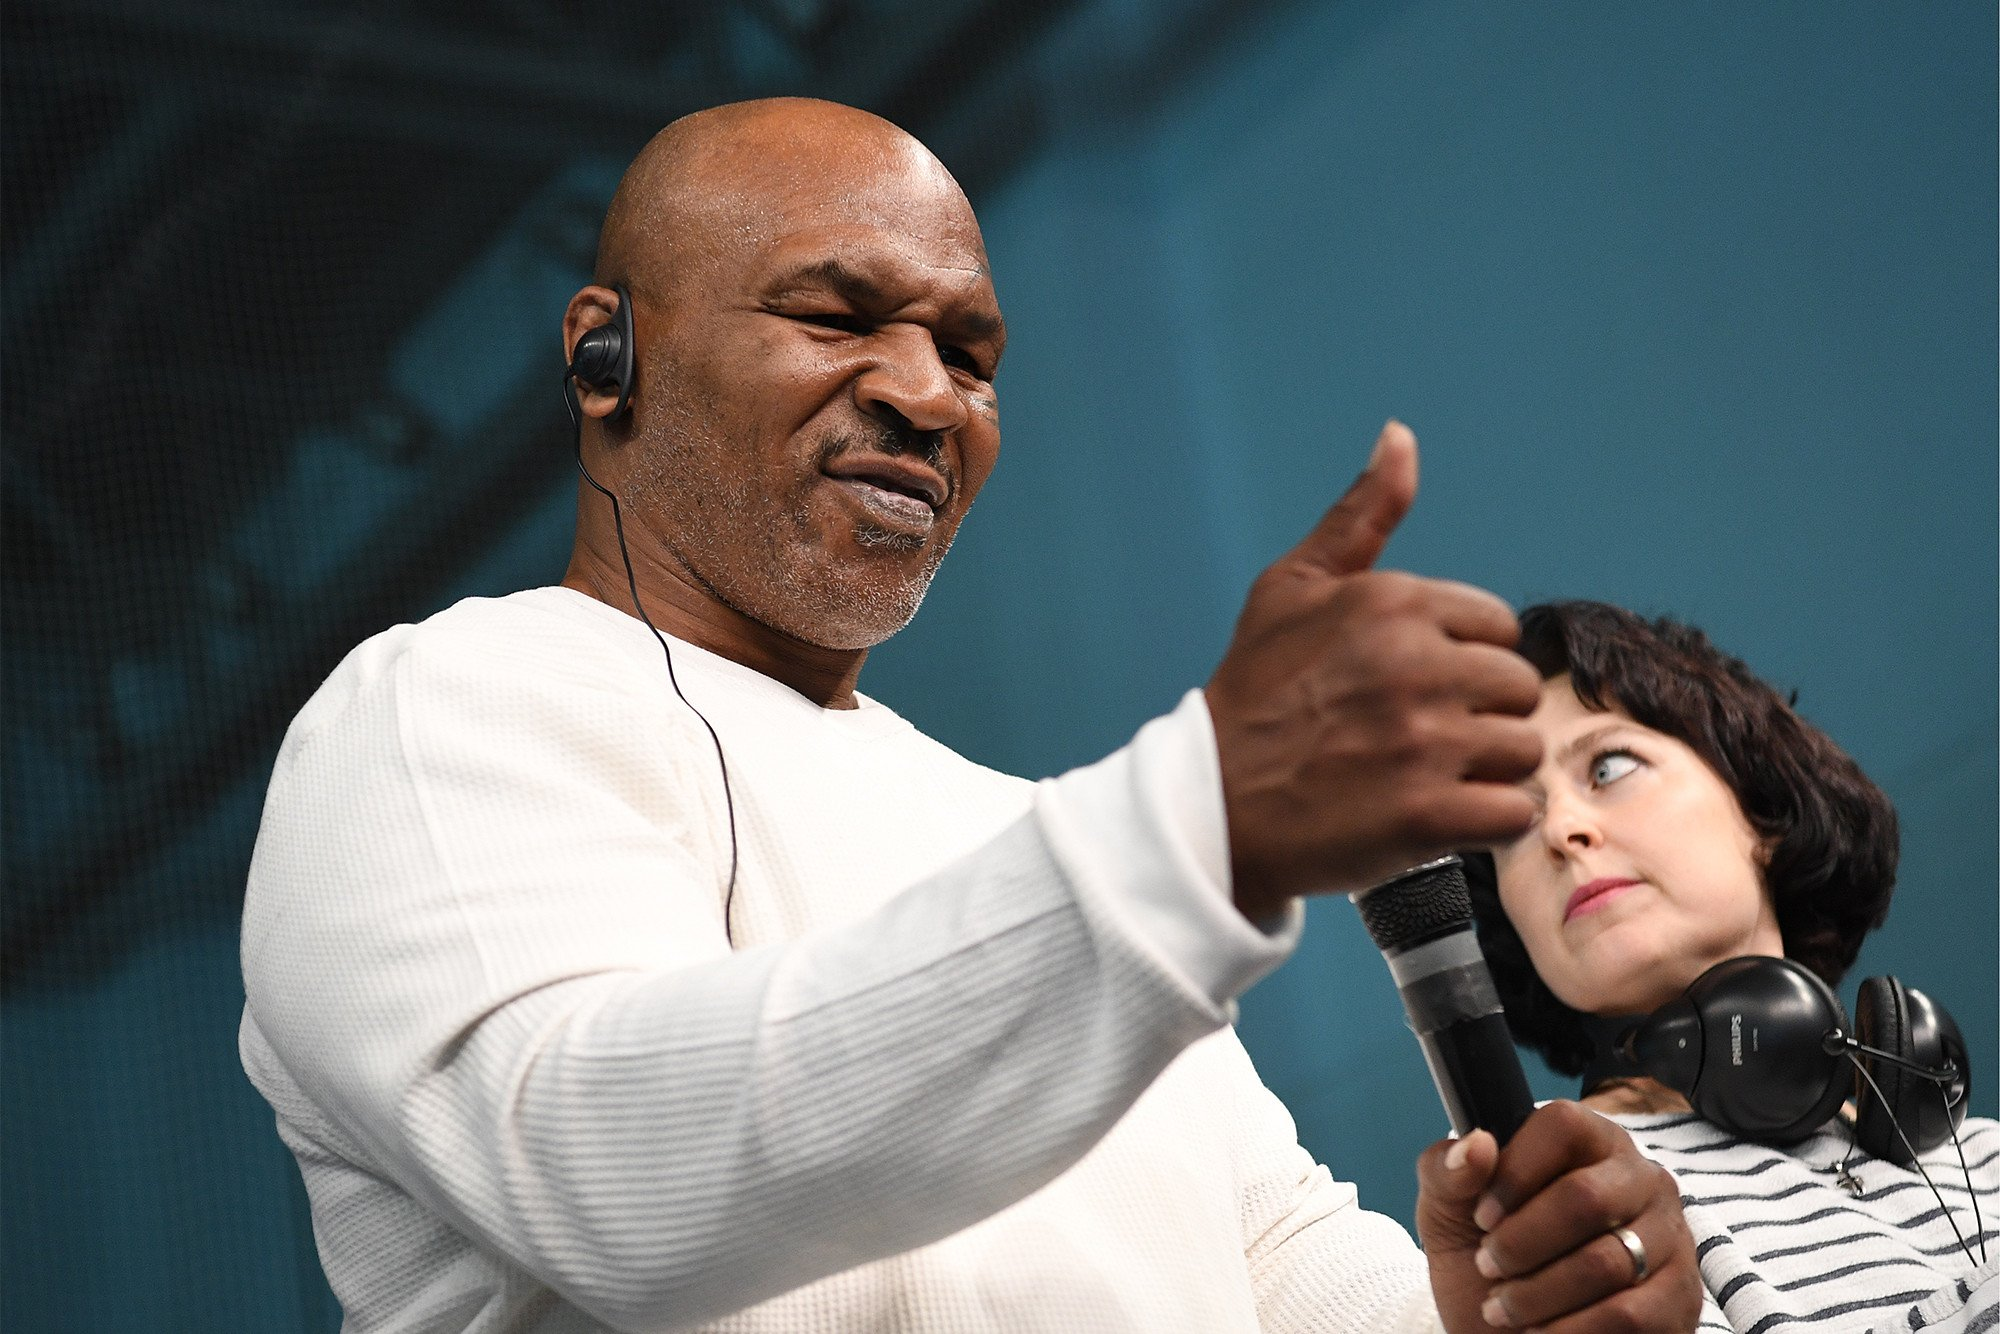 Mike Tyson's old house is being turned into a church